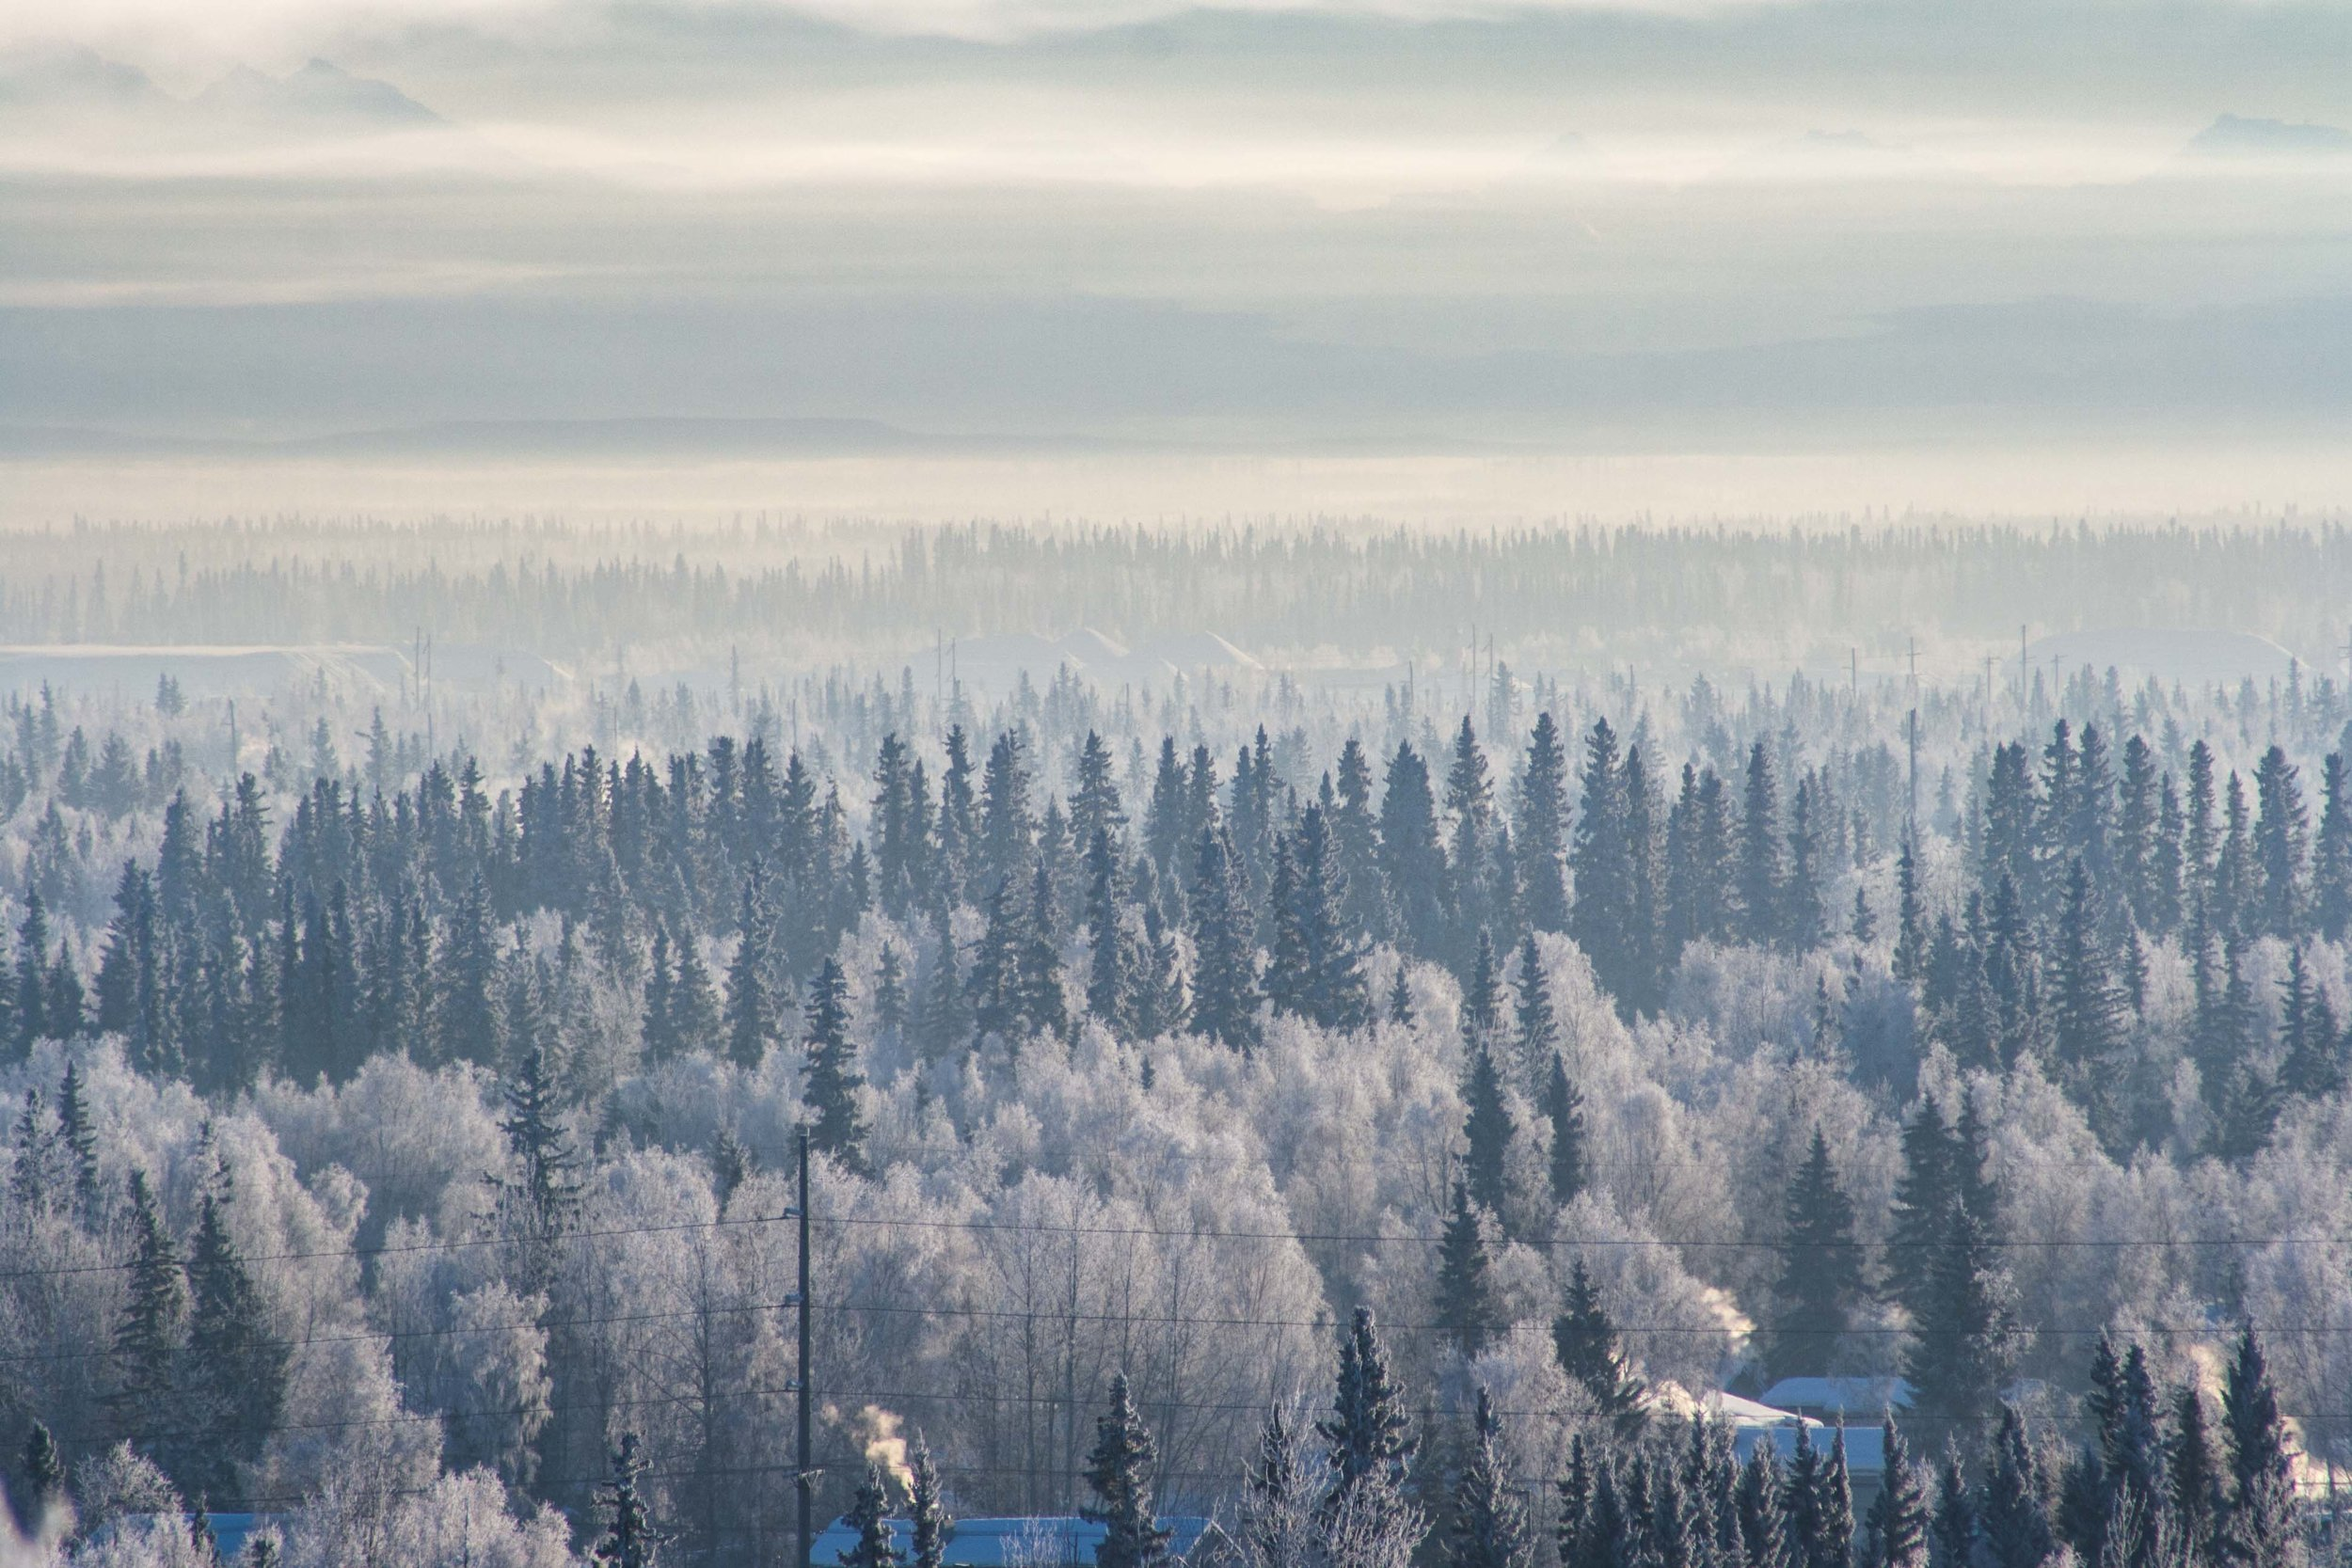 Fairbanks, Alaska. Januari 2014